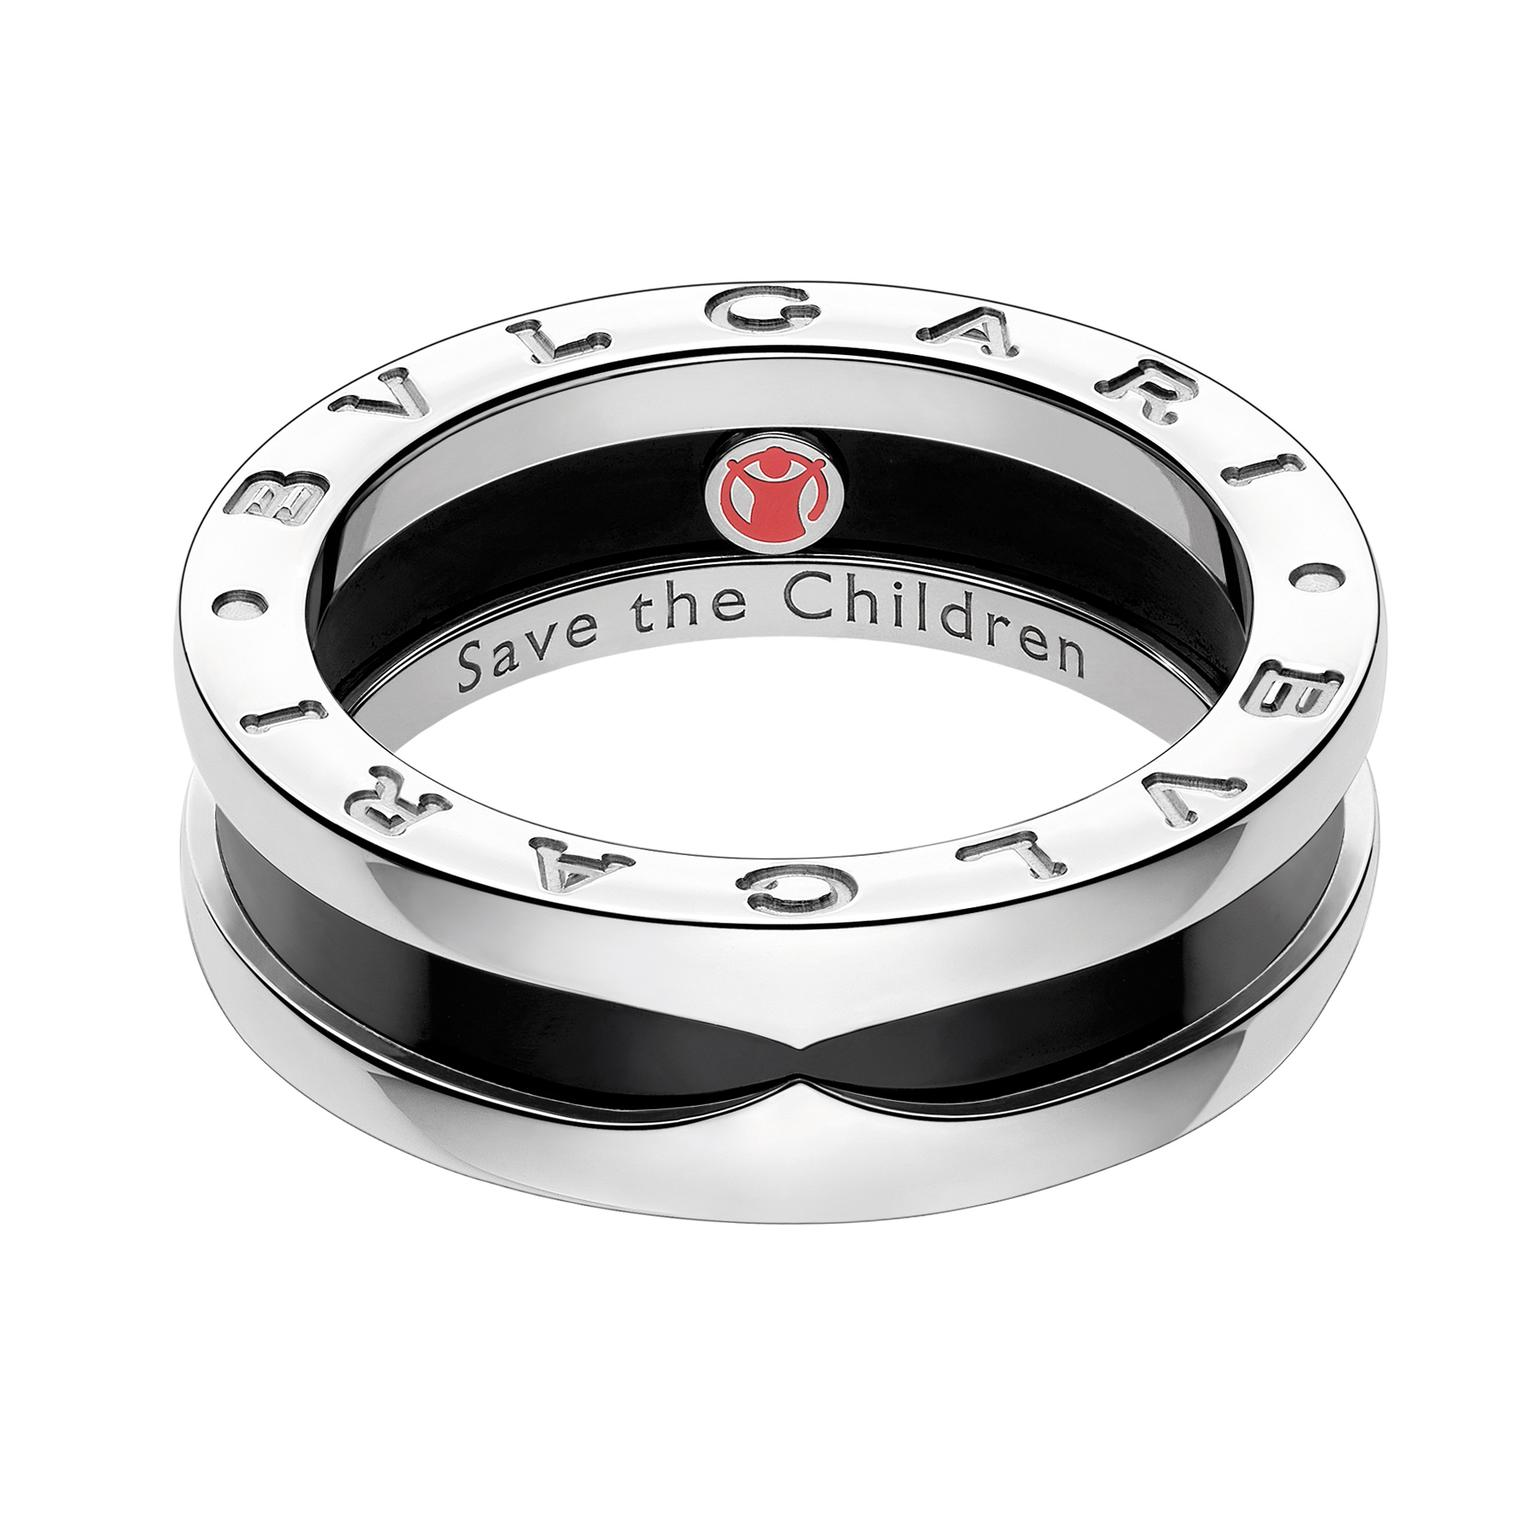 Bulgari Save the Children ring